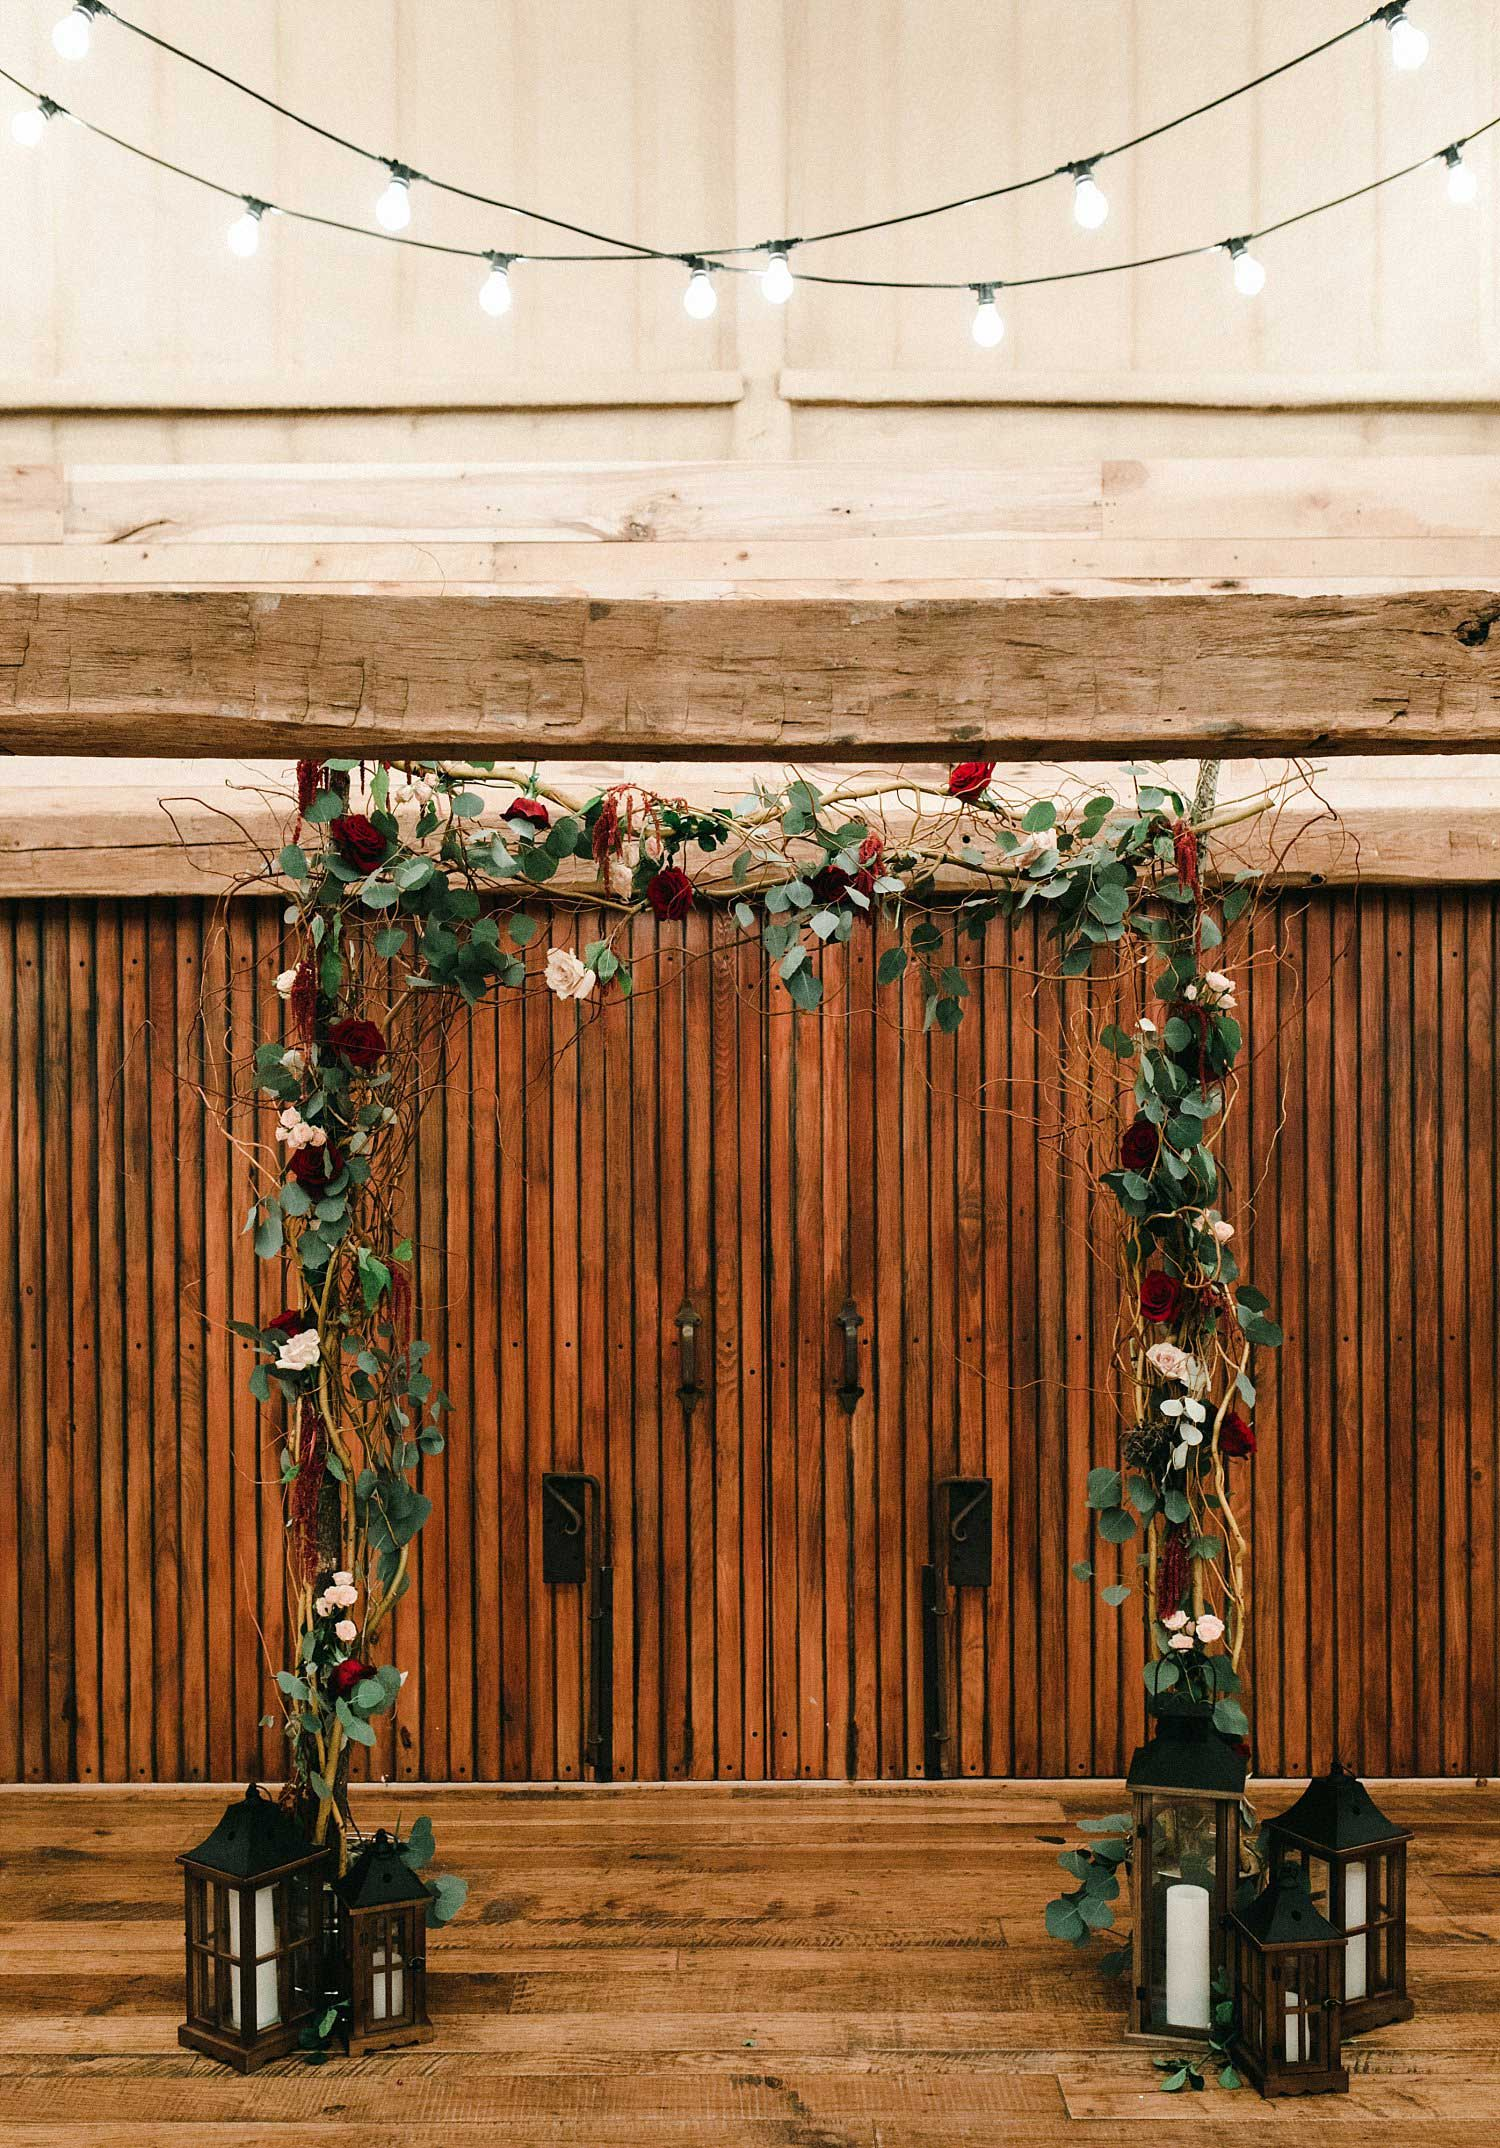 Hollow Hill Farm Event Center Wedding ceremony archway with wooden lanterns